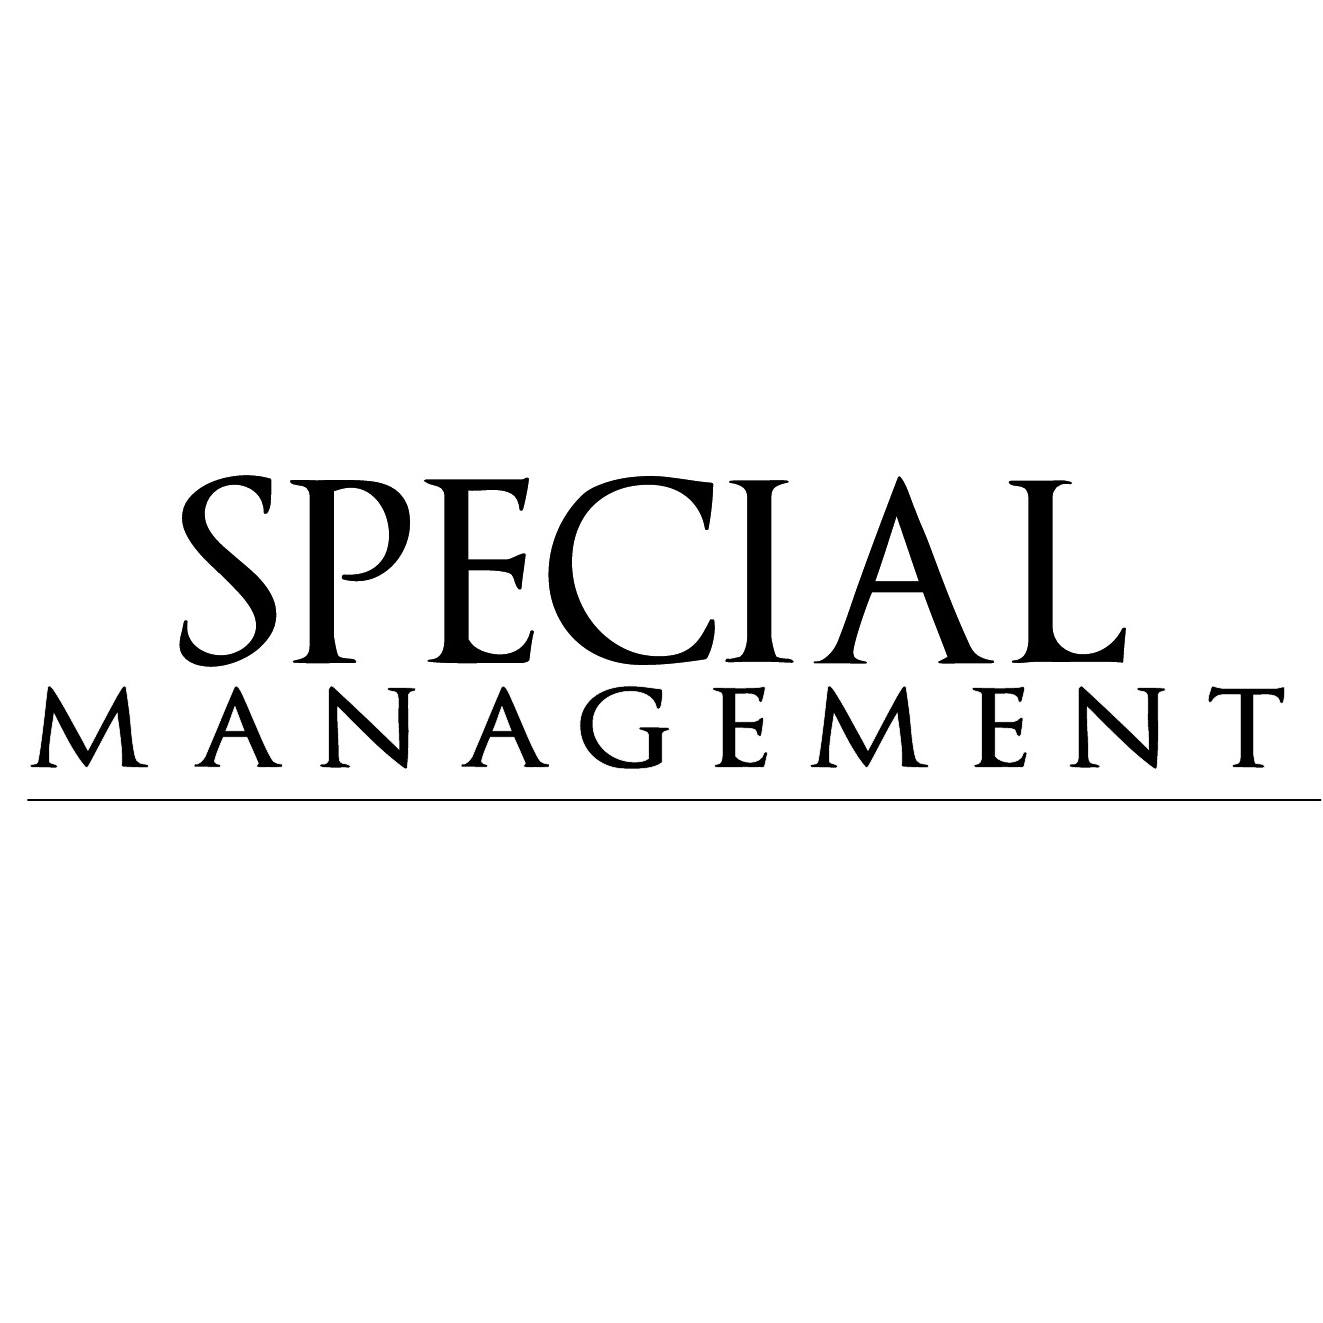 Special Management